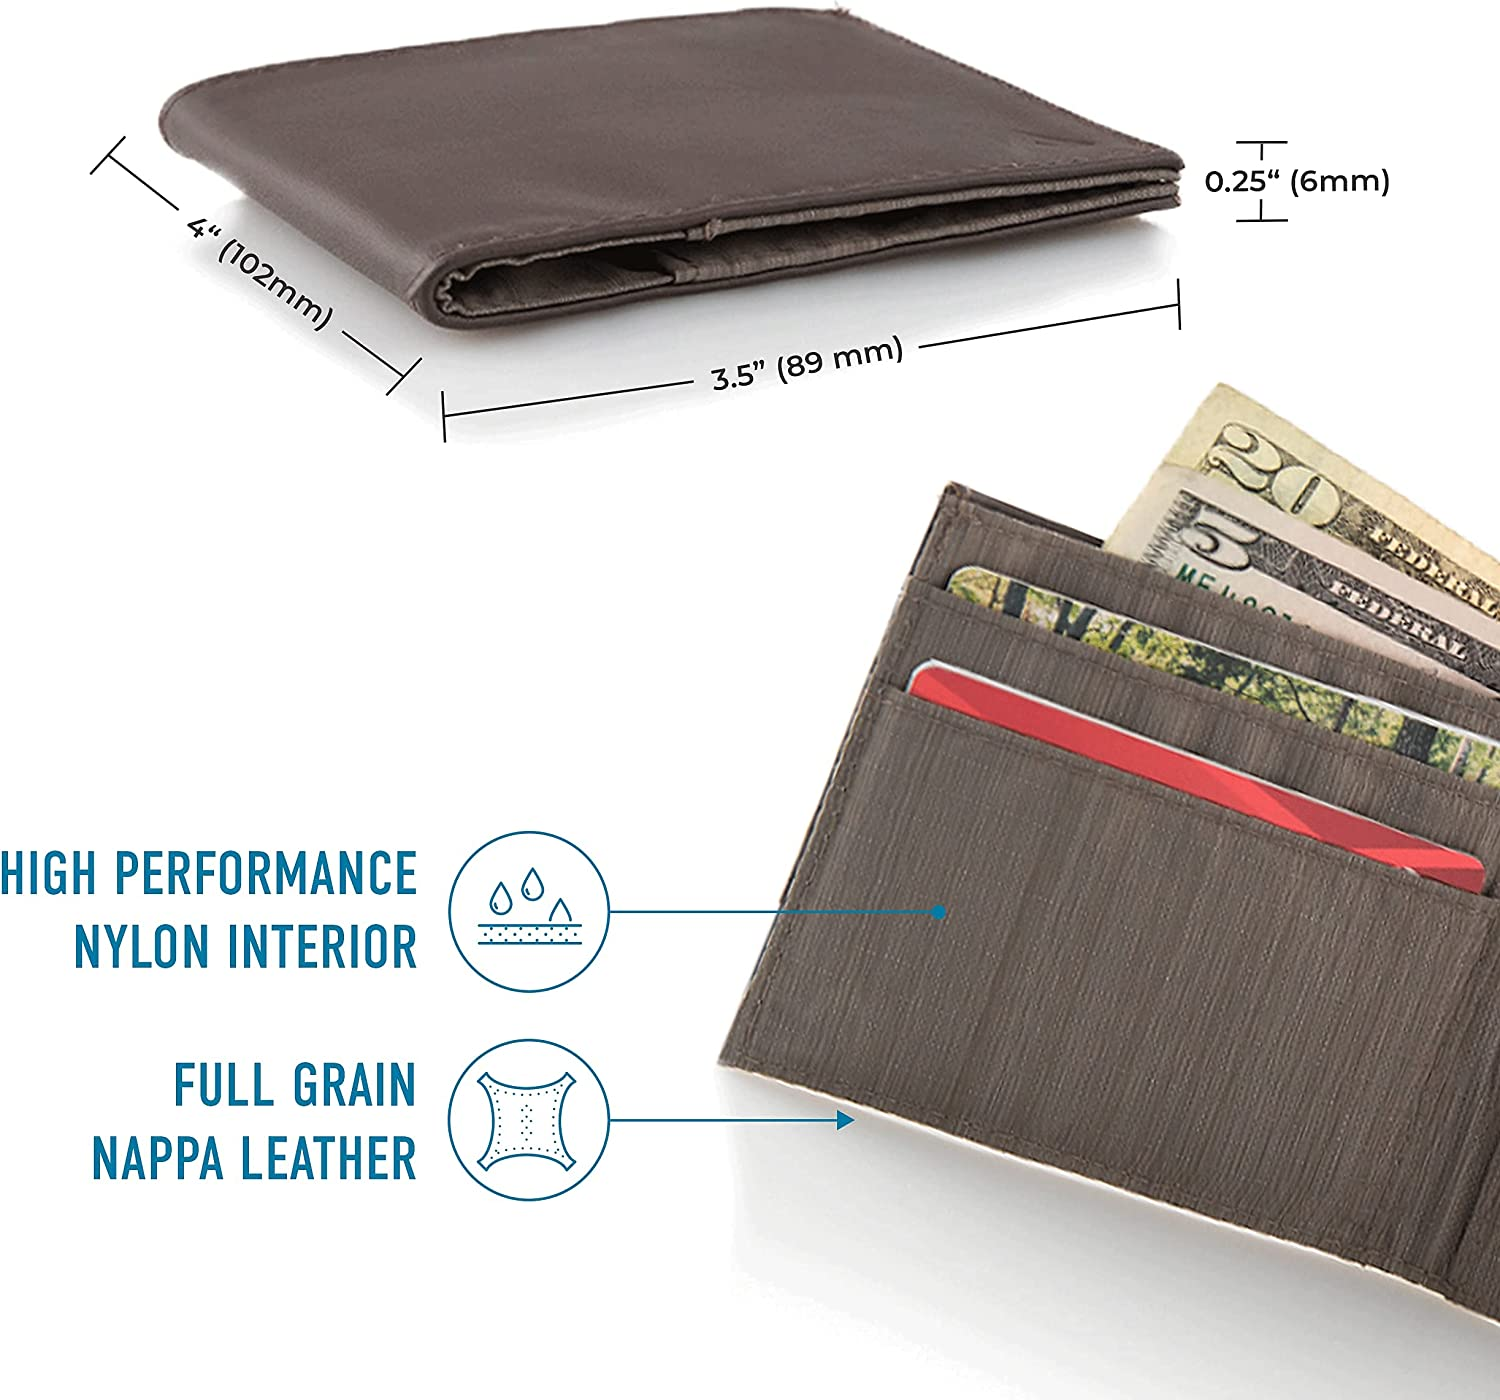 Allett ID Wallet, Brown | Leather, Slim Minimalist Bifold Wallet | Durable & USA Made | Holds 4-12+ Cards, Cash